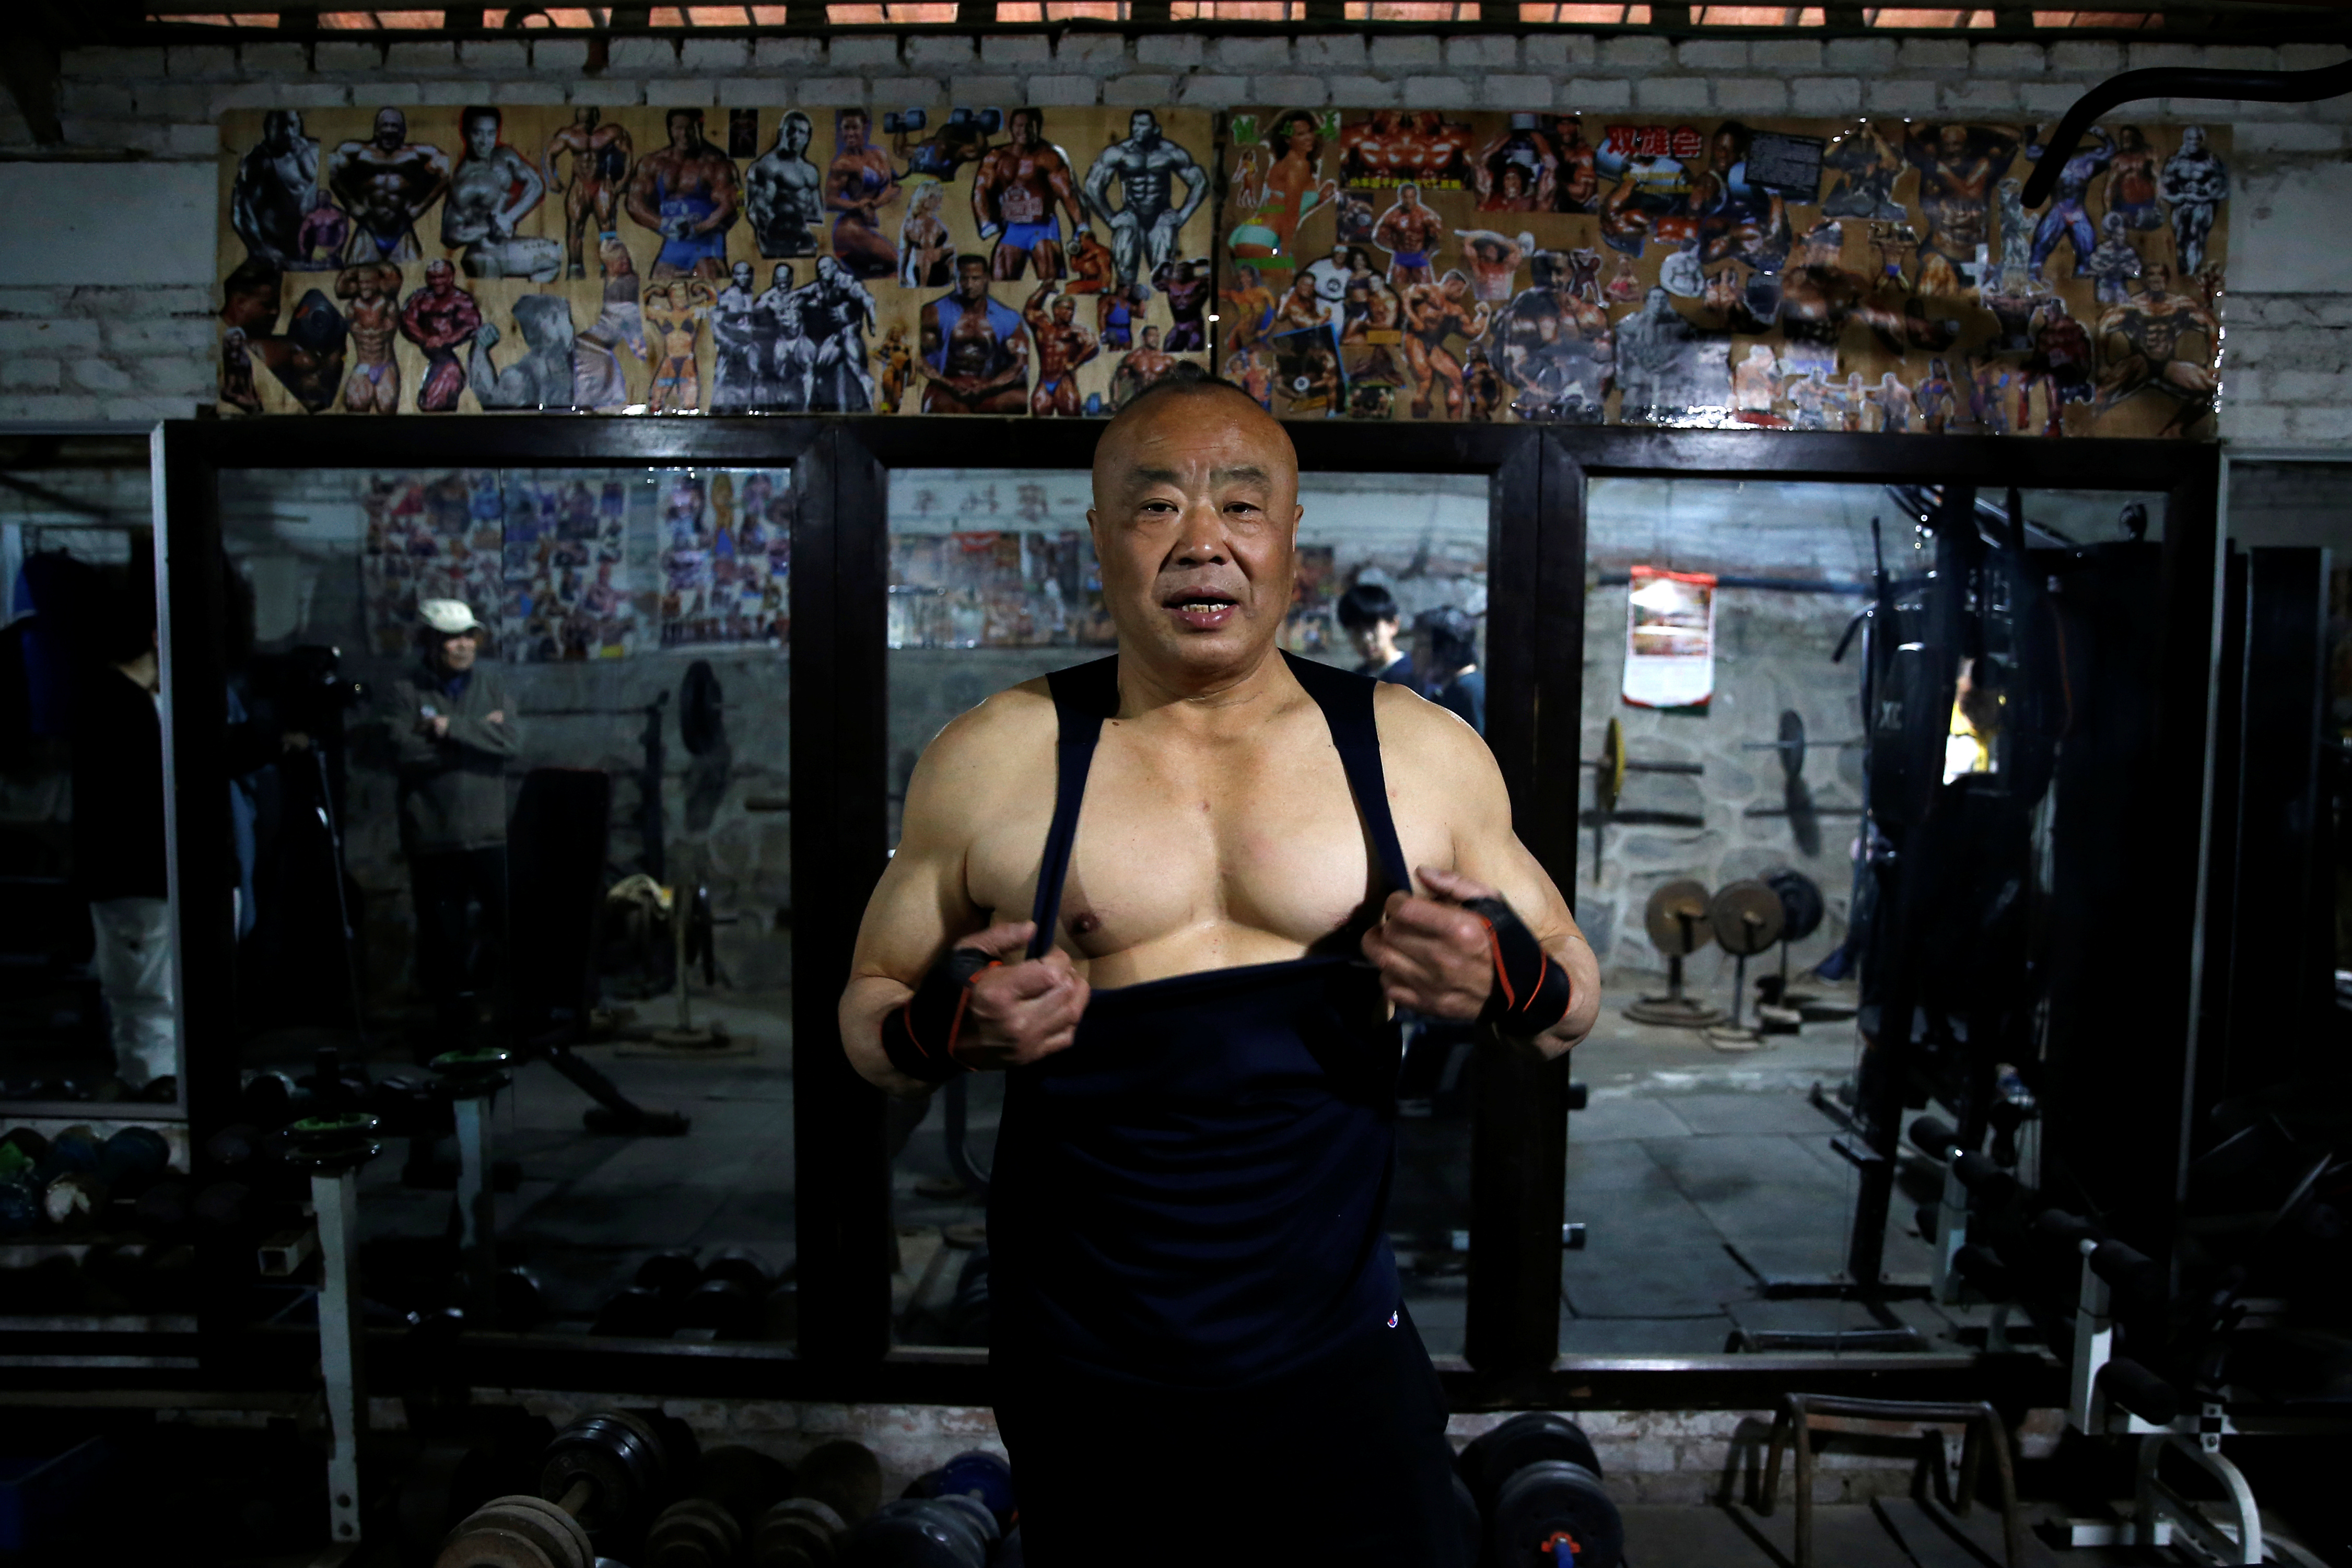 Xu Wei, a 63-year-old former factory worker and the current gym manager, show his muscles at the gym which has been turned from a bicycle shed inside a residential compound in the southwest of Beijing, China April 8, 2021. REUTERS/Tingshu Wang